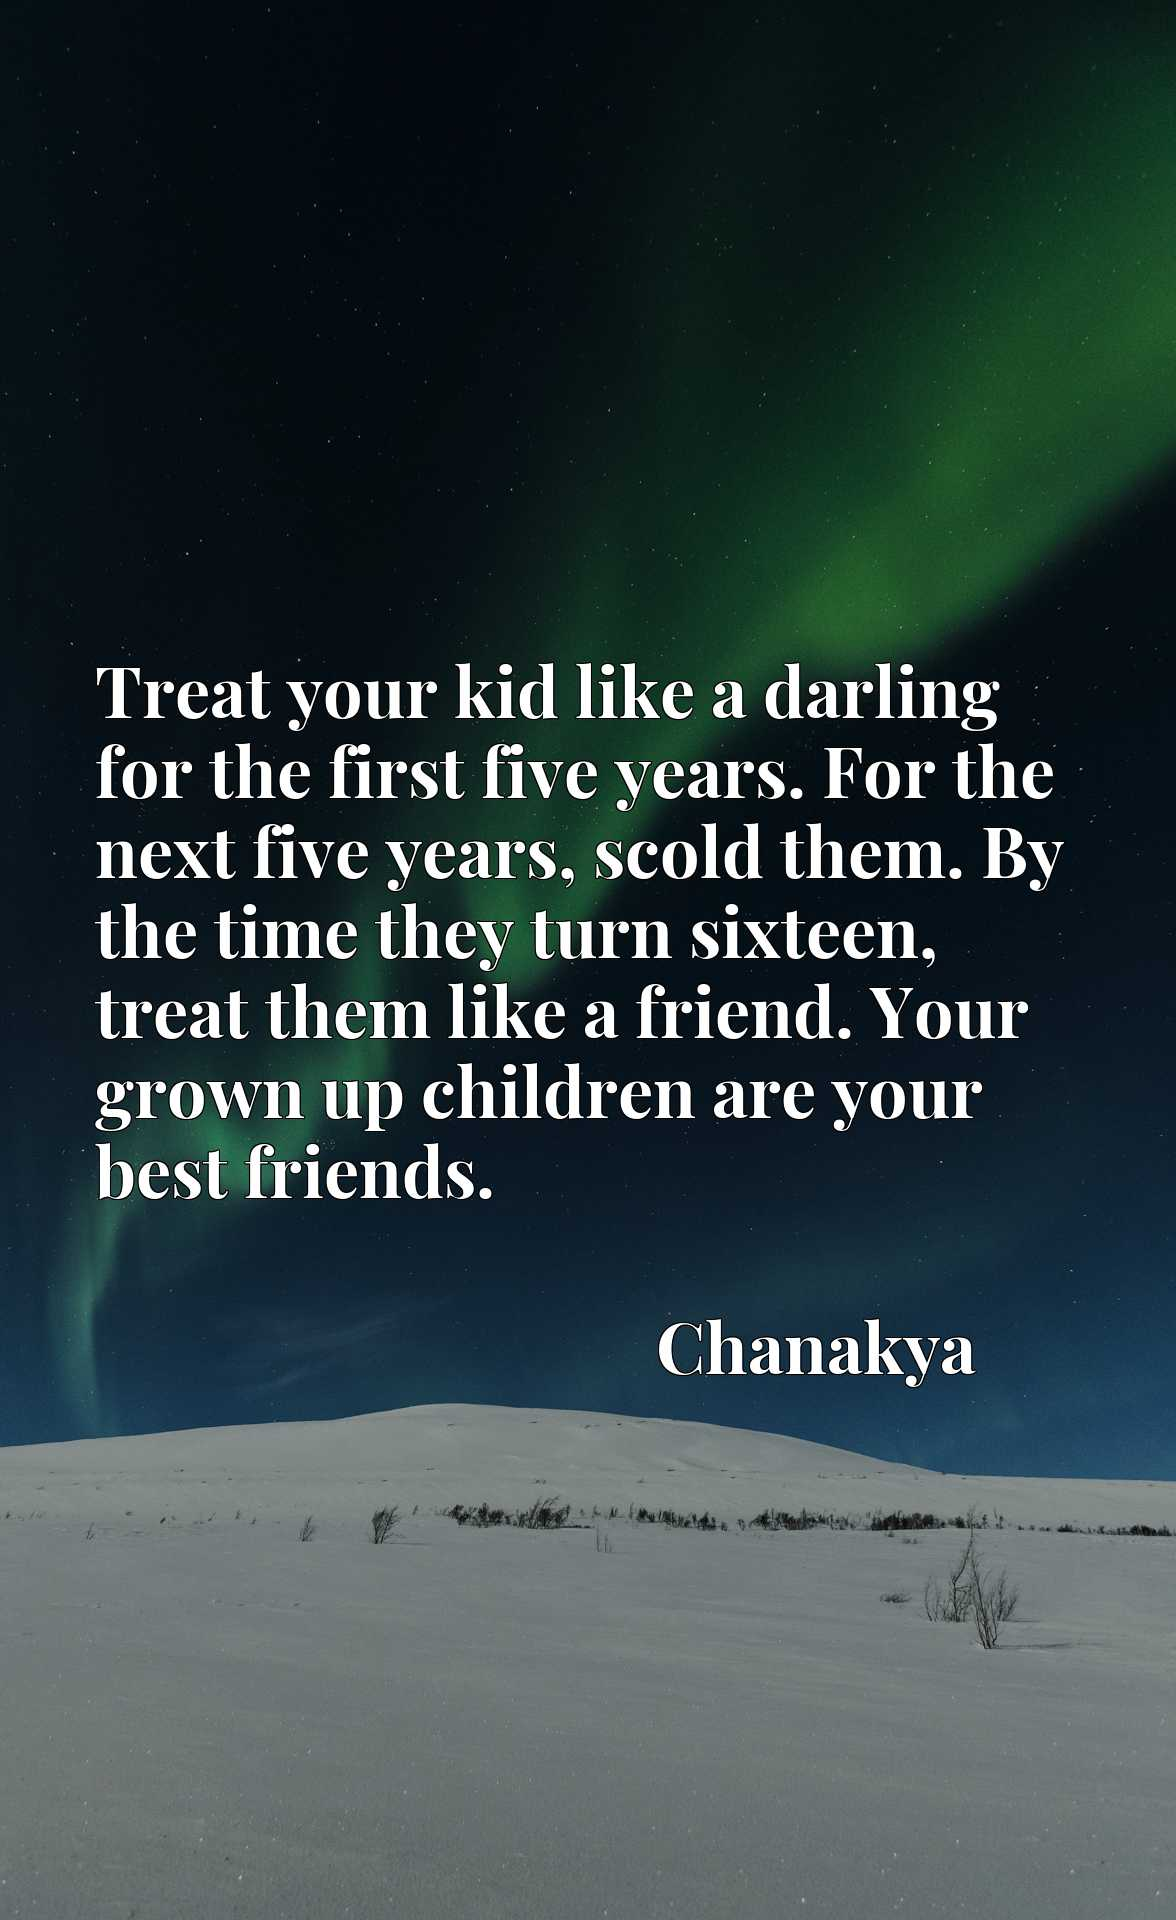 Treat your kid like a darling for the first five years. For the next five years, scold them. By the time they turn sixteen, treat them like a friend. Your grown up children are your best friends.